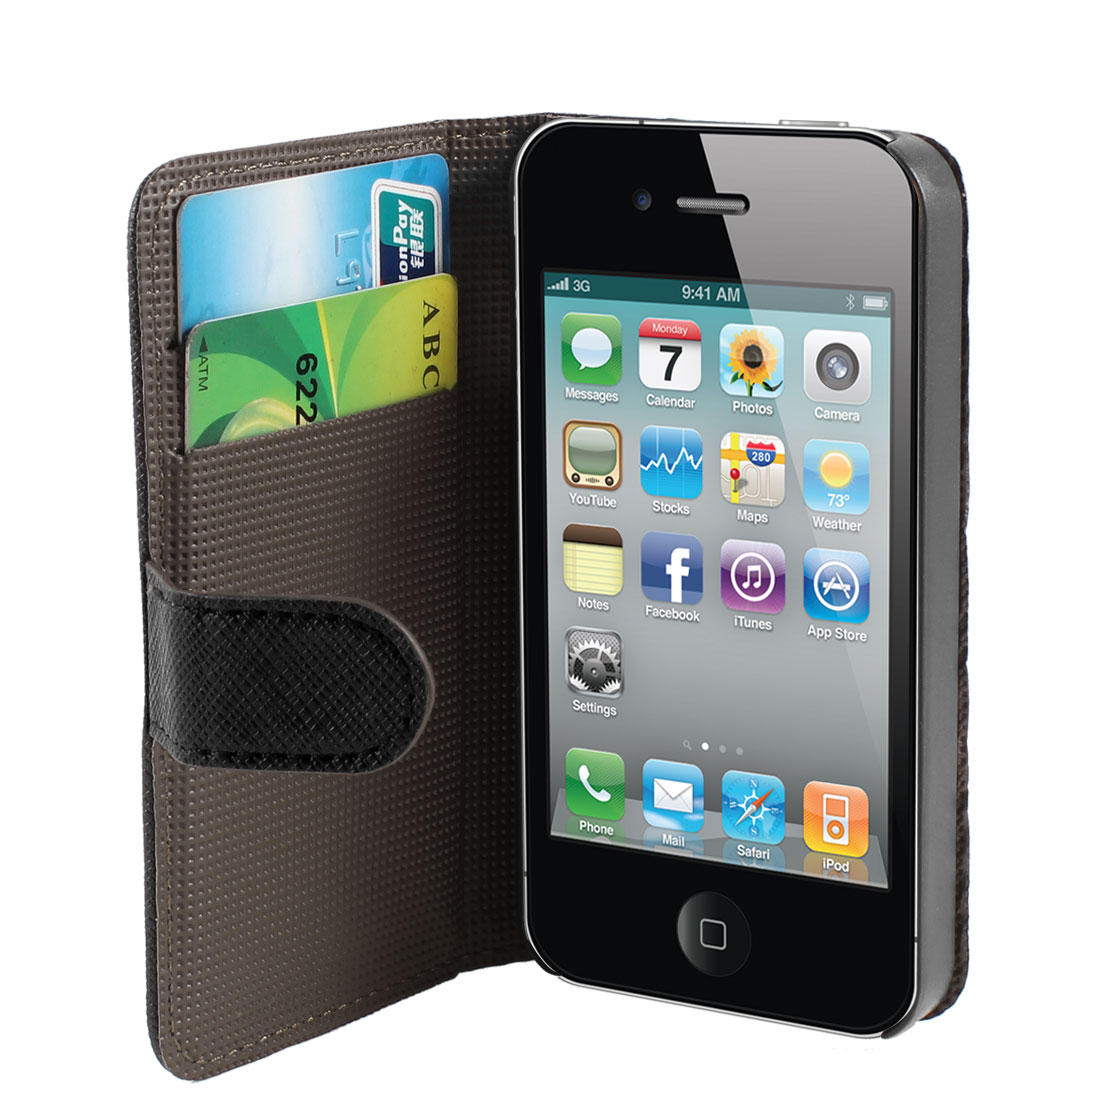 Black Flip Folio Textured PU Leather Case Cover Guard for iPhone 4 4S 4GS 4G 4th